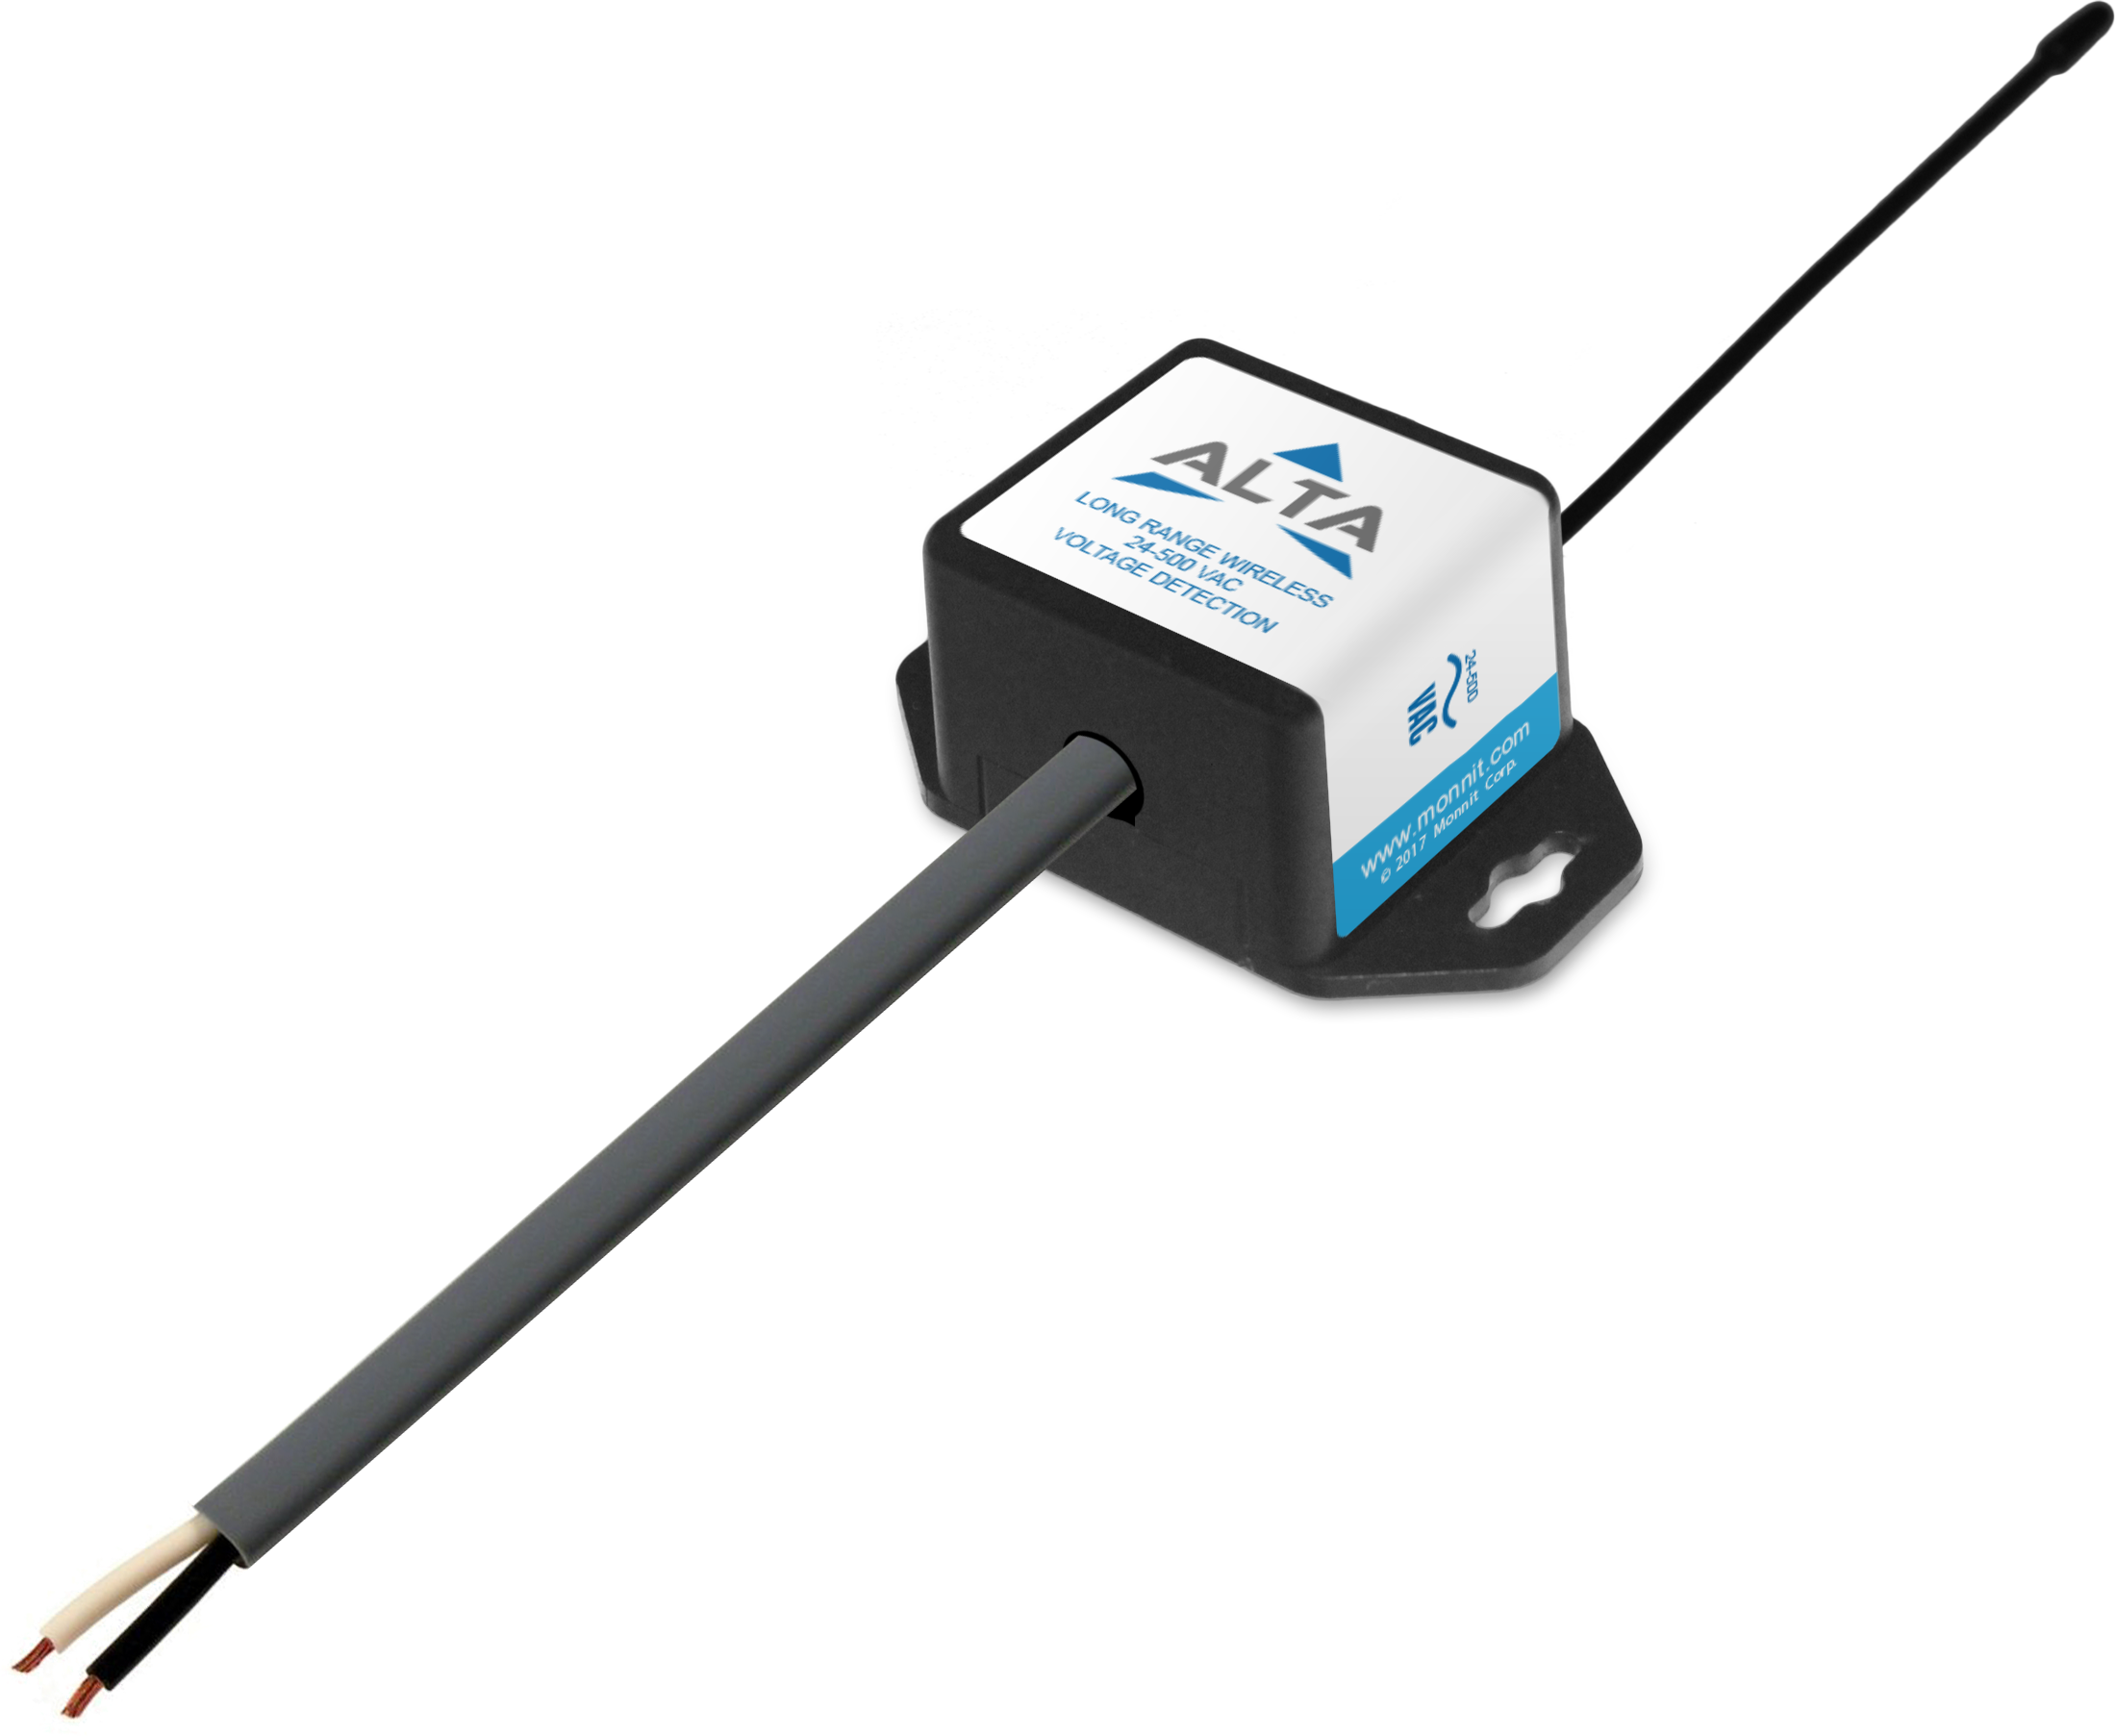 Wireless AC Voltage Detection Sensors (4-500 VAC)